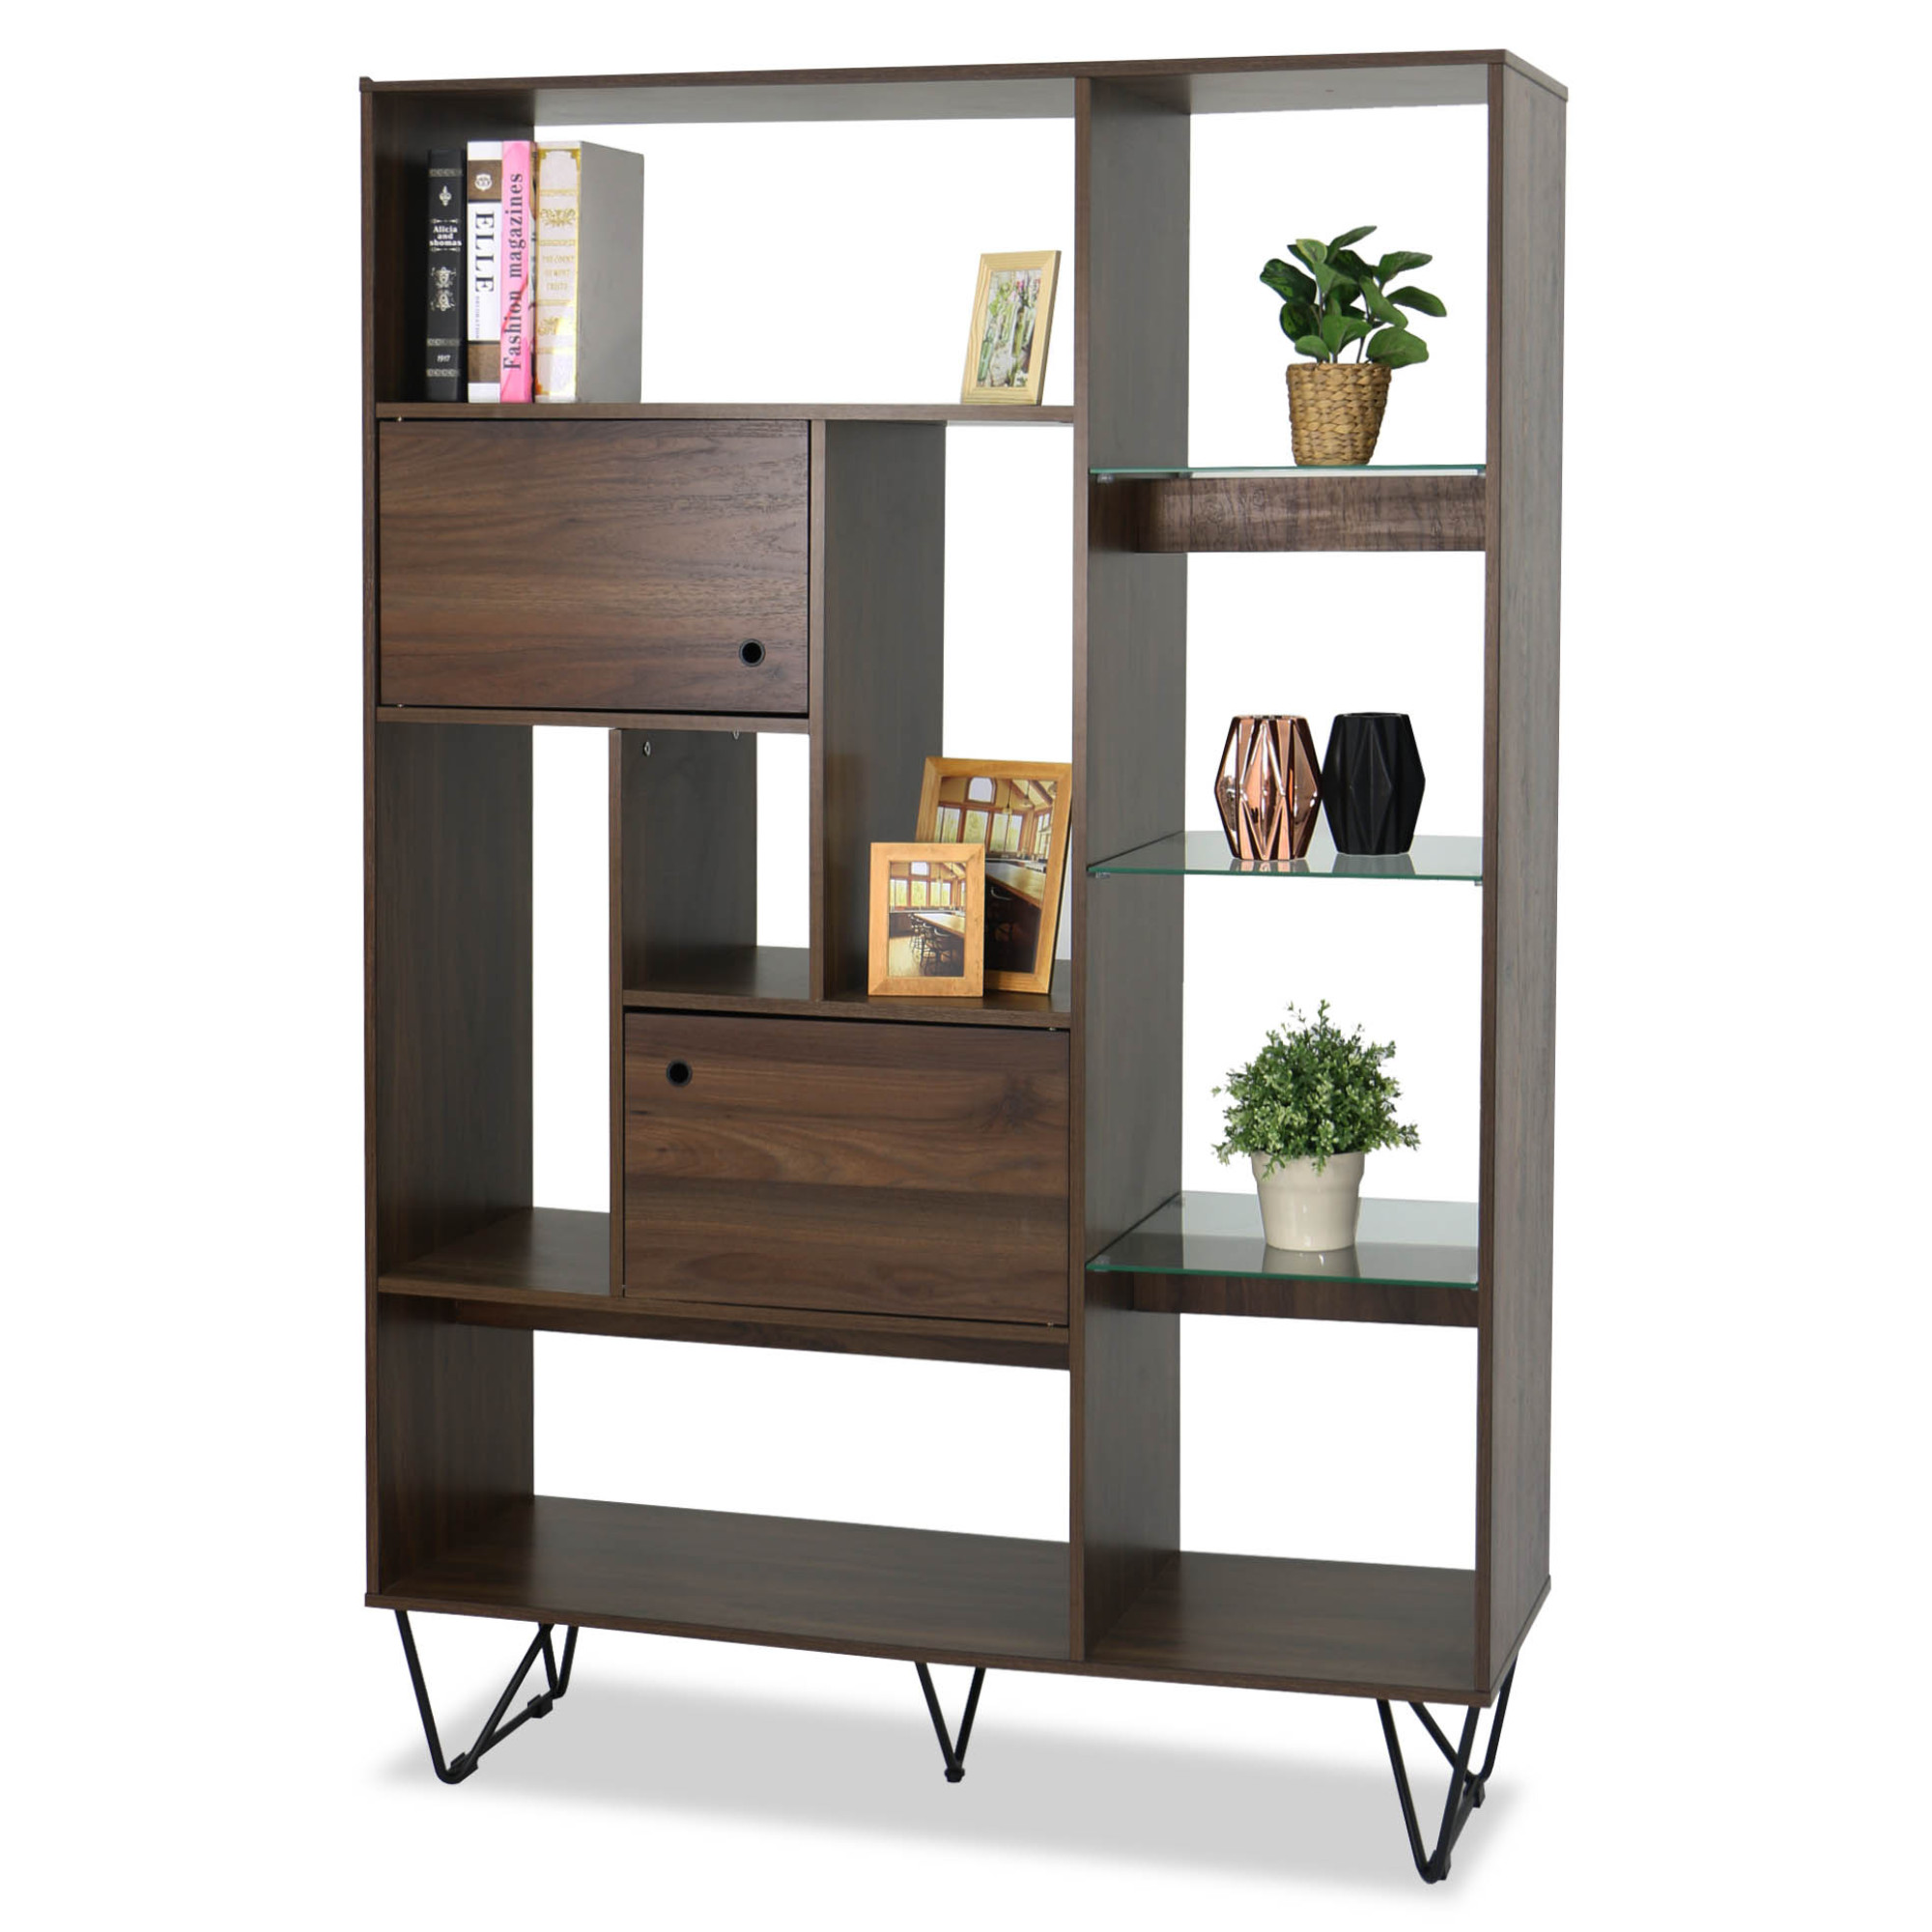 Living Room Display Storage: Display/Storage Cabinets